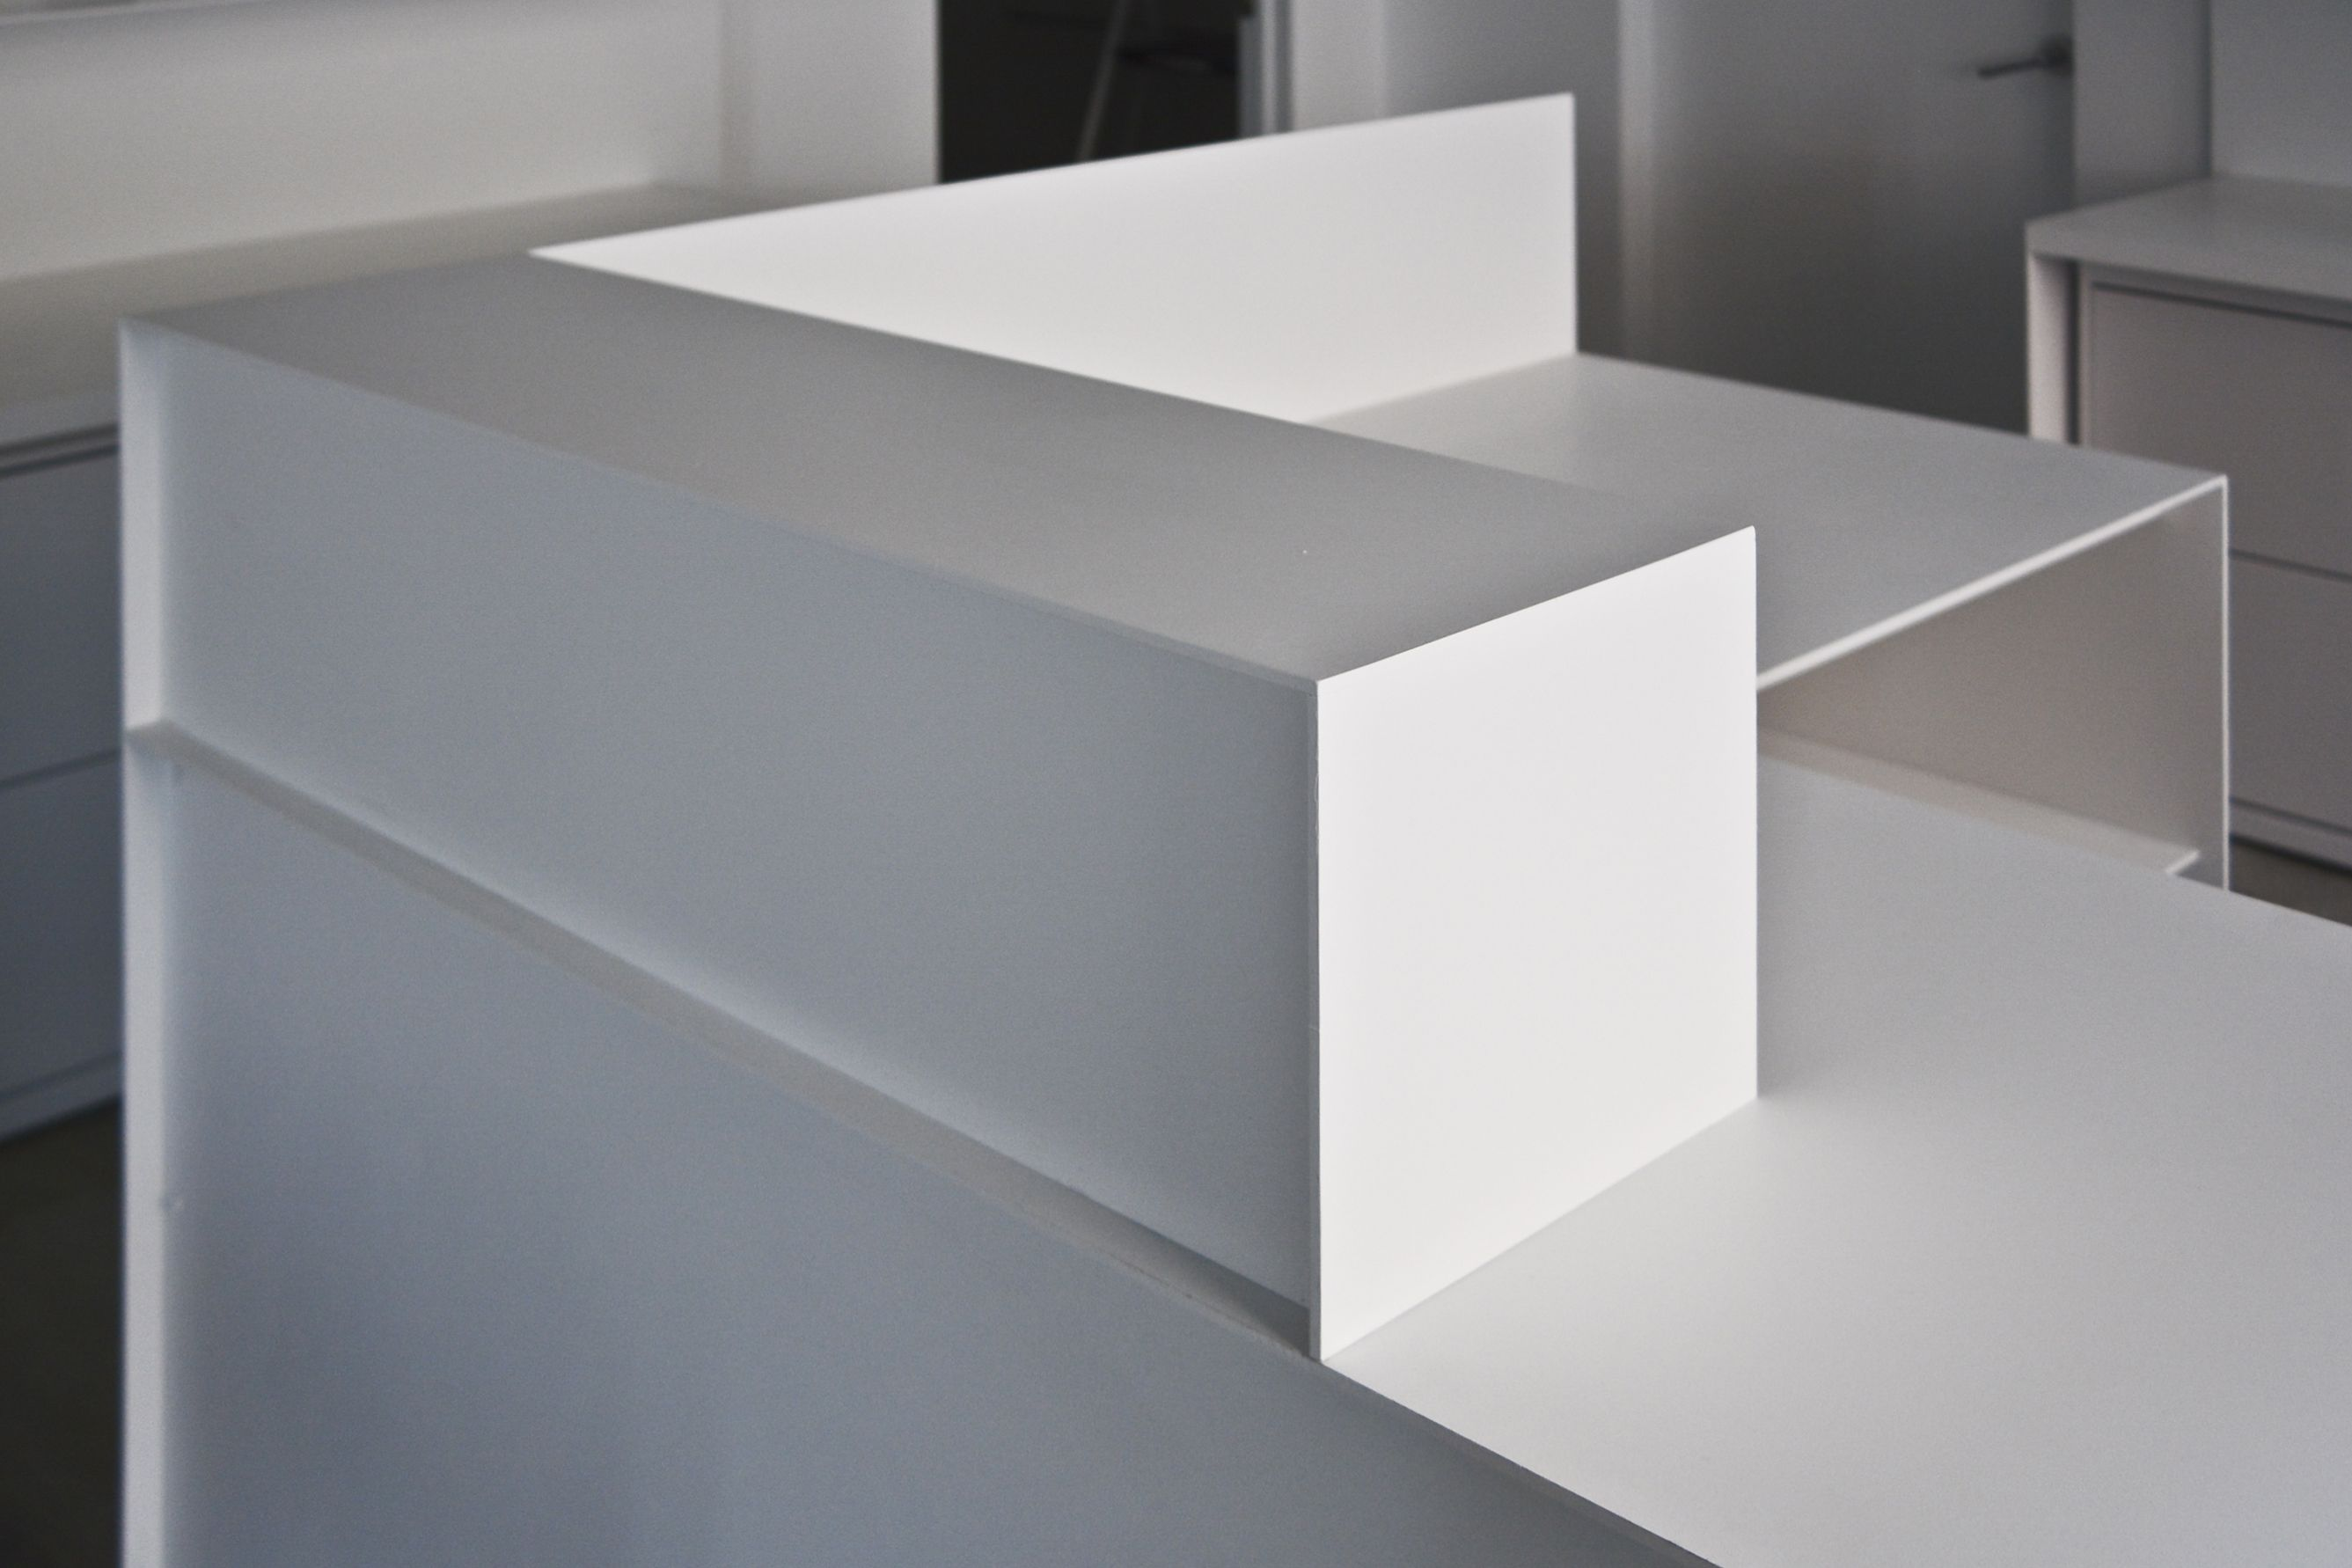 Hand Crafted Minimal White Powder Coated Steel Desks And